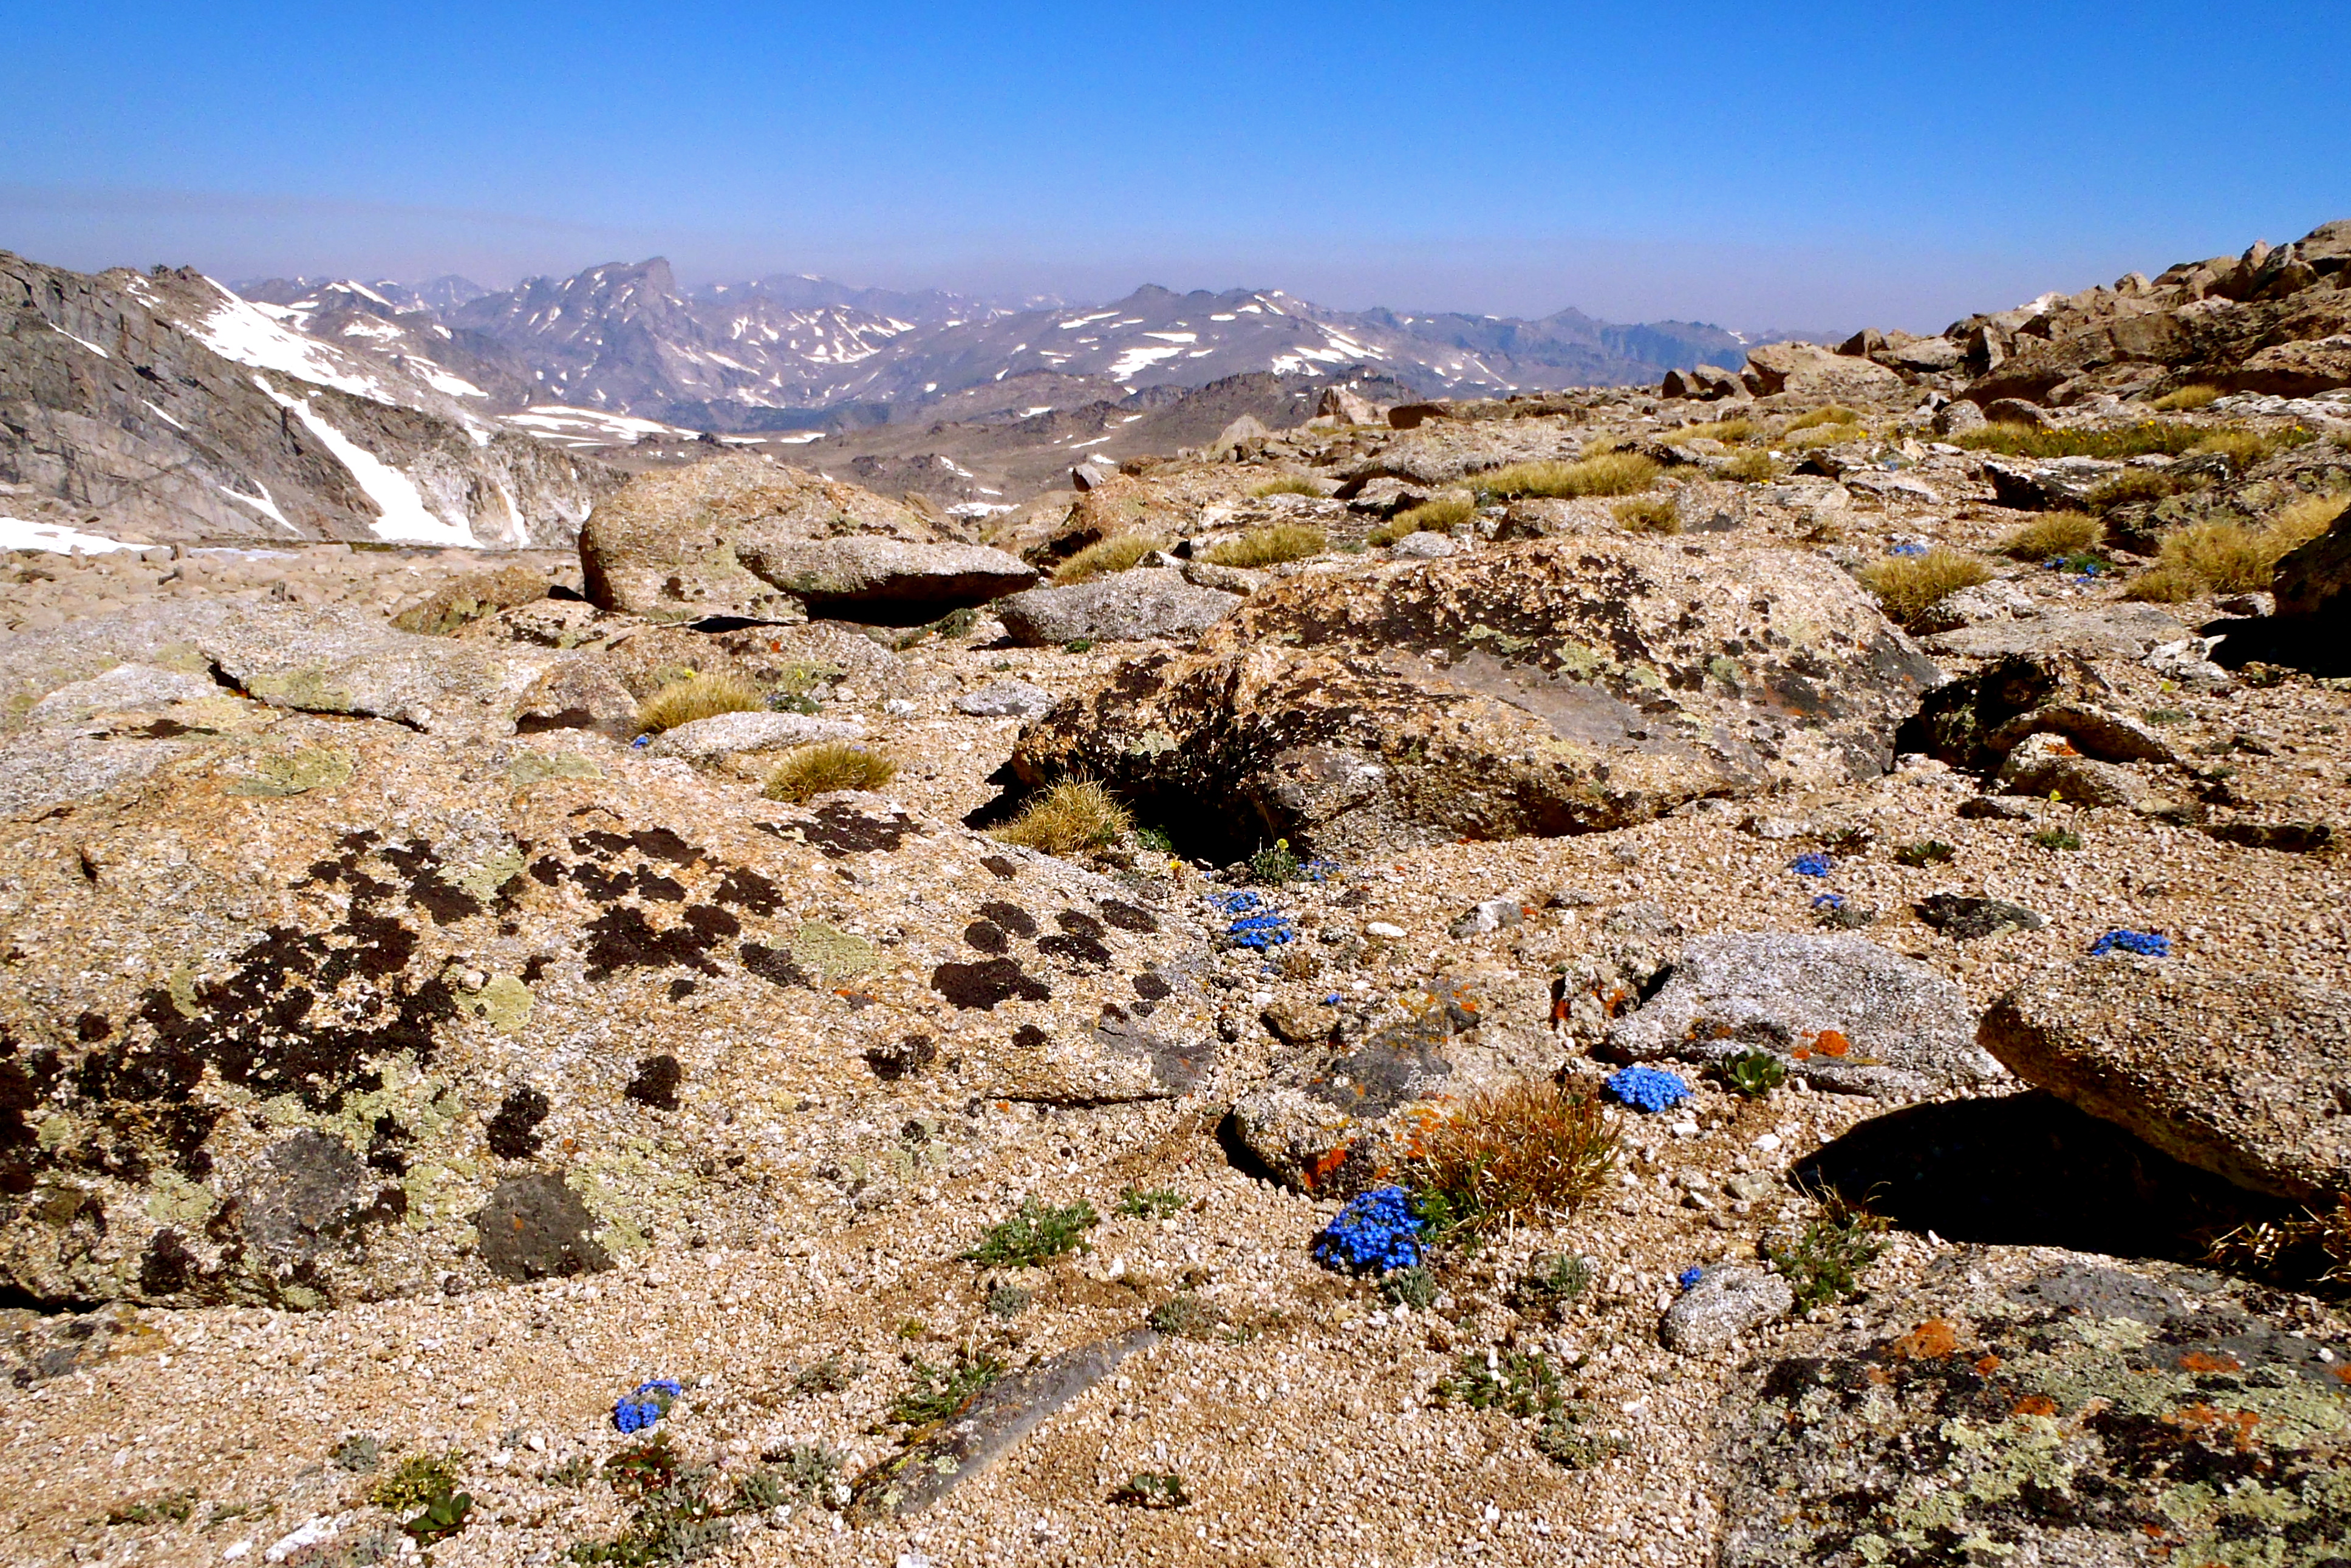 Alpine tundra. Notice the little blue flowers. They are forget-me-nots, my favorite.